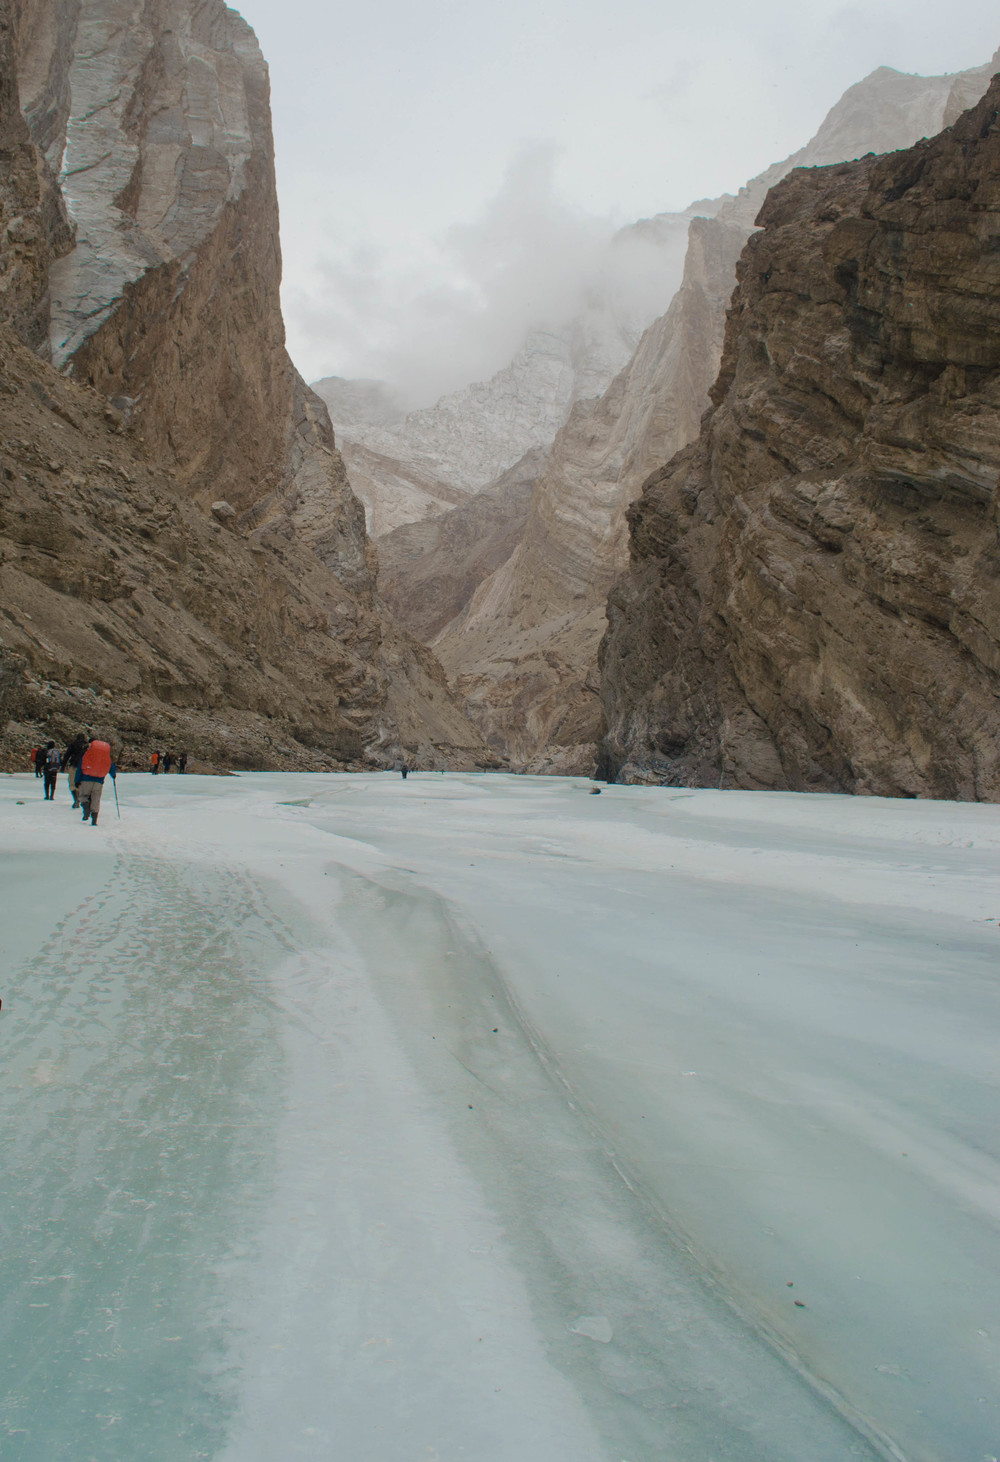 The landscape changed so quickly... it looked like the frozen gateway to the perilous winter road had opened. PC: Raunak